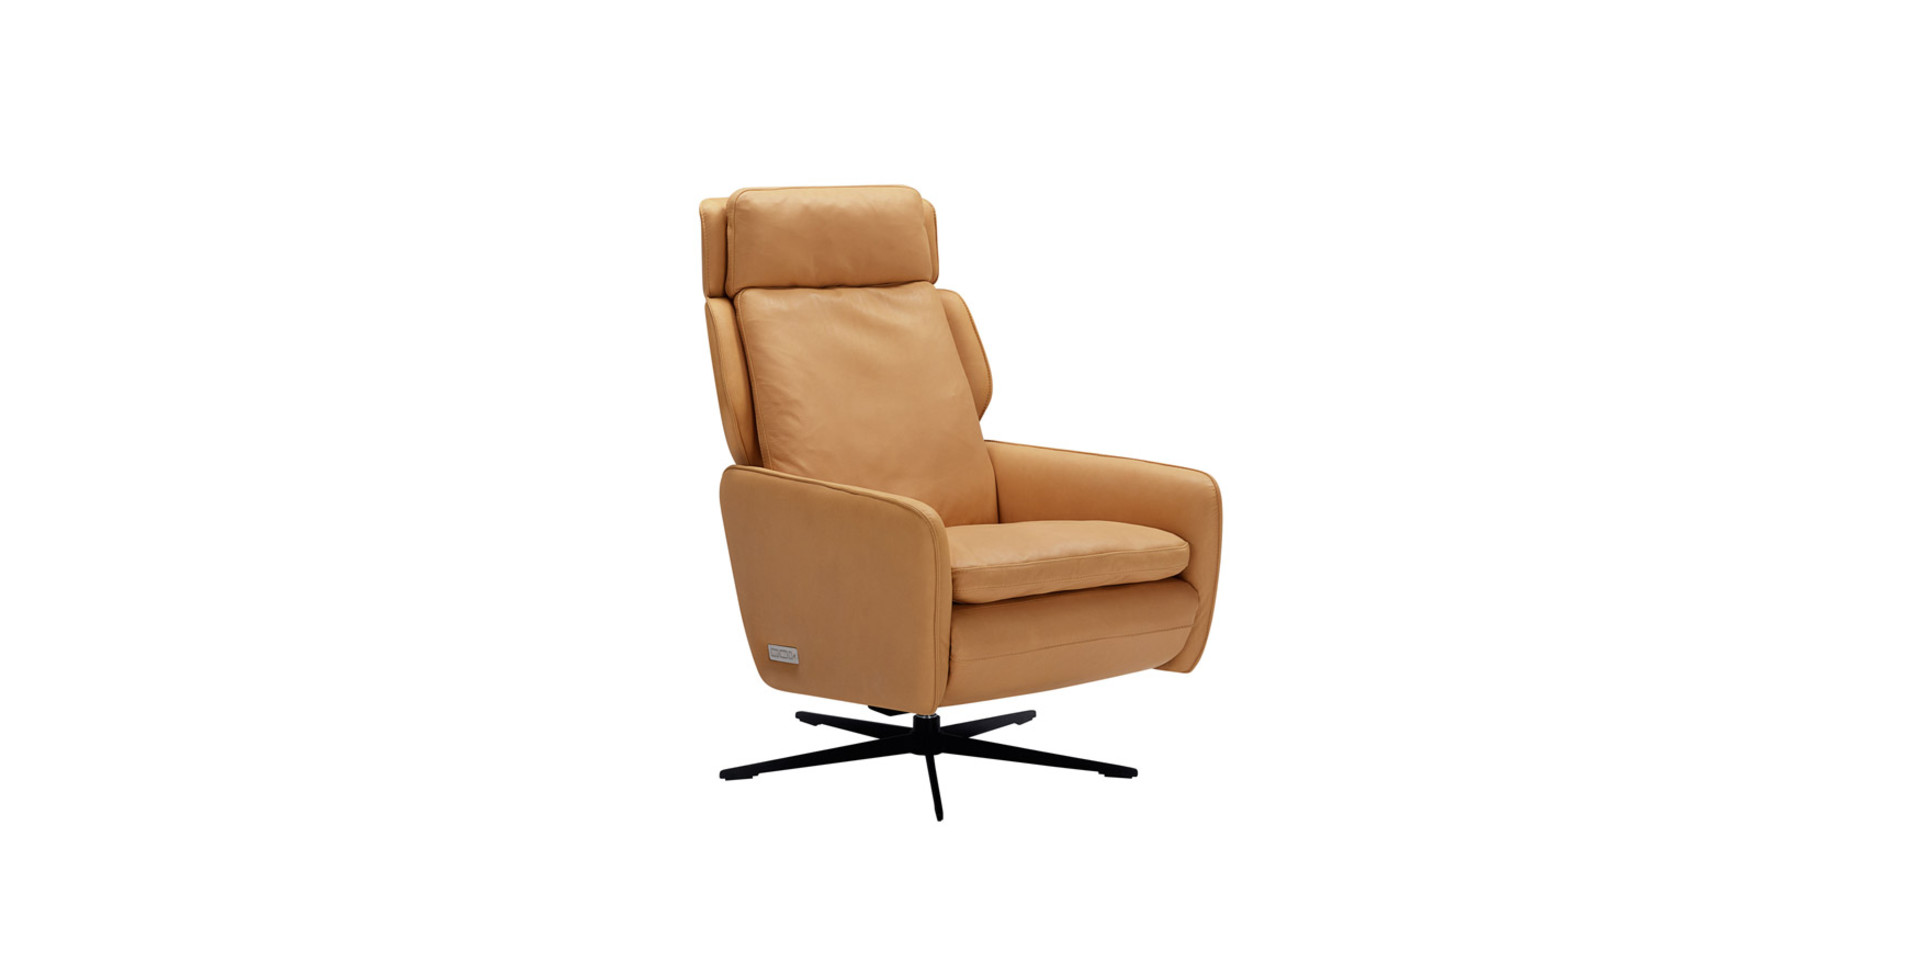 EVY_RELAX_armchair_aniline1_latte_2